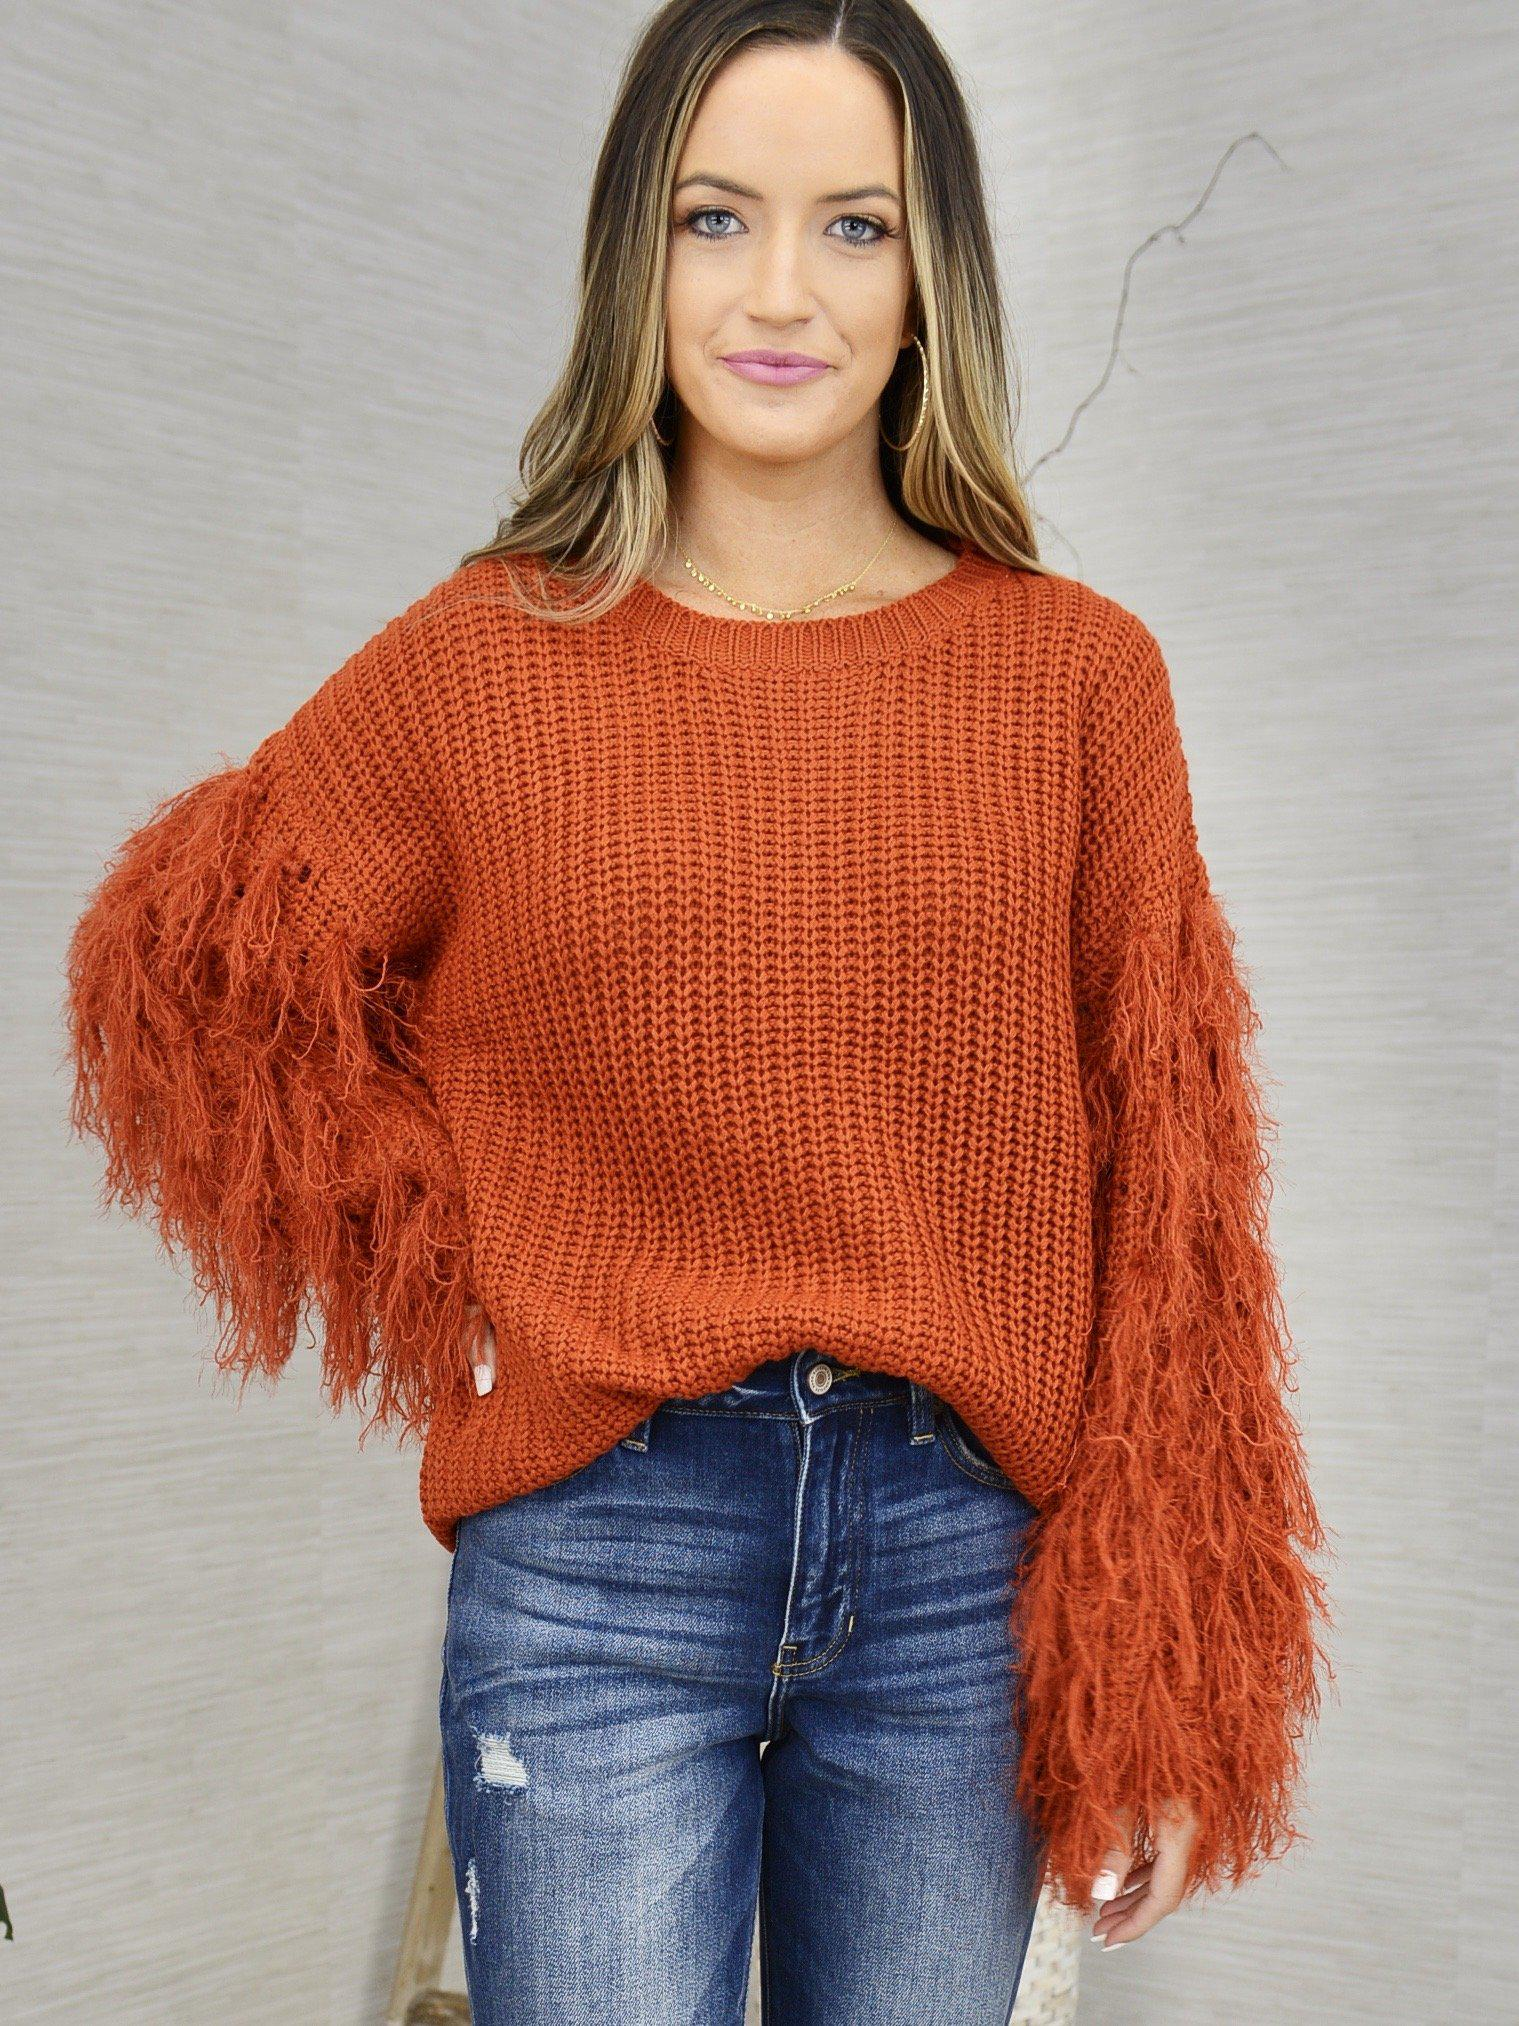 Harvest Moon Sweater-Women's -New Arrivals-Runway Seven